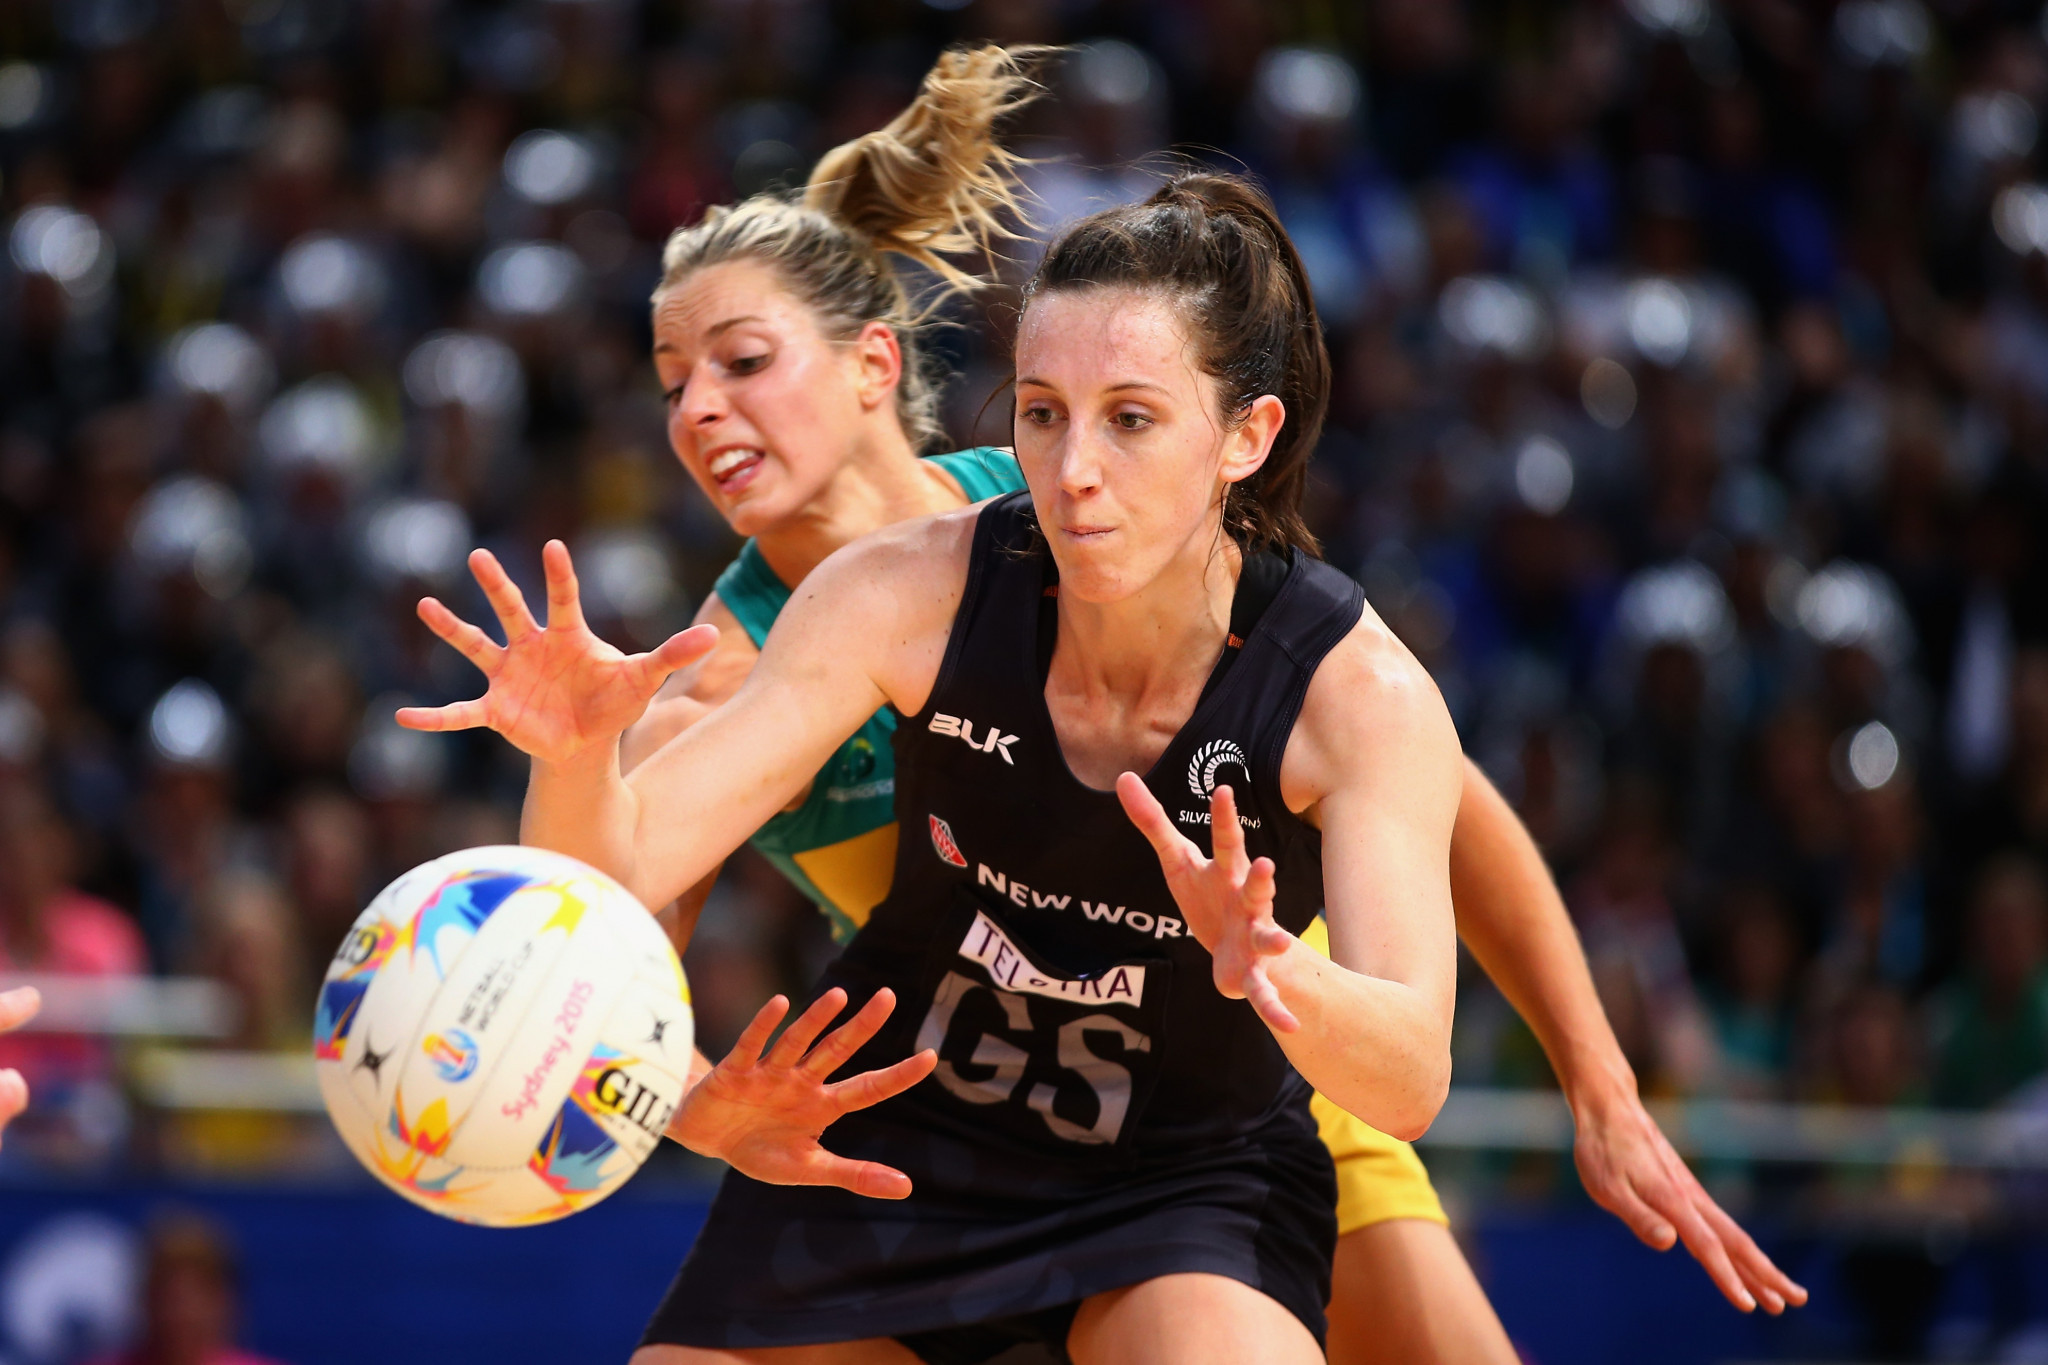 New Zealand will be aiming to lift the Netball World Cup for the first time in 16 years in Liverpool next year after finishing runners-up to Australia in the last three tournaments, including at Sydney in 2015 ©Getty Images